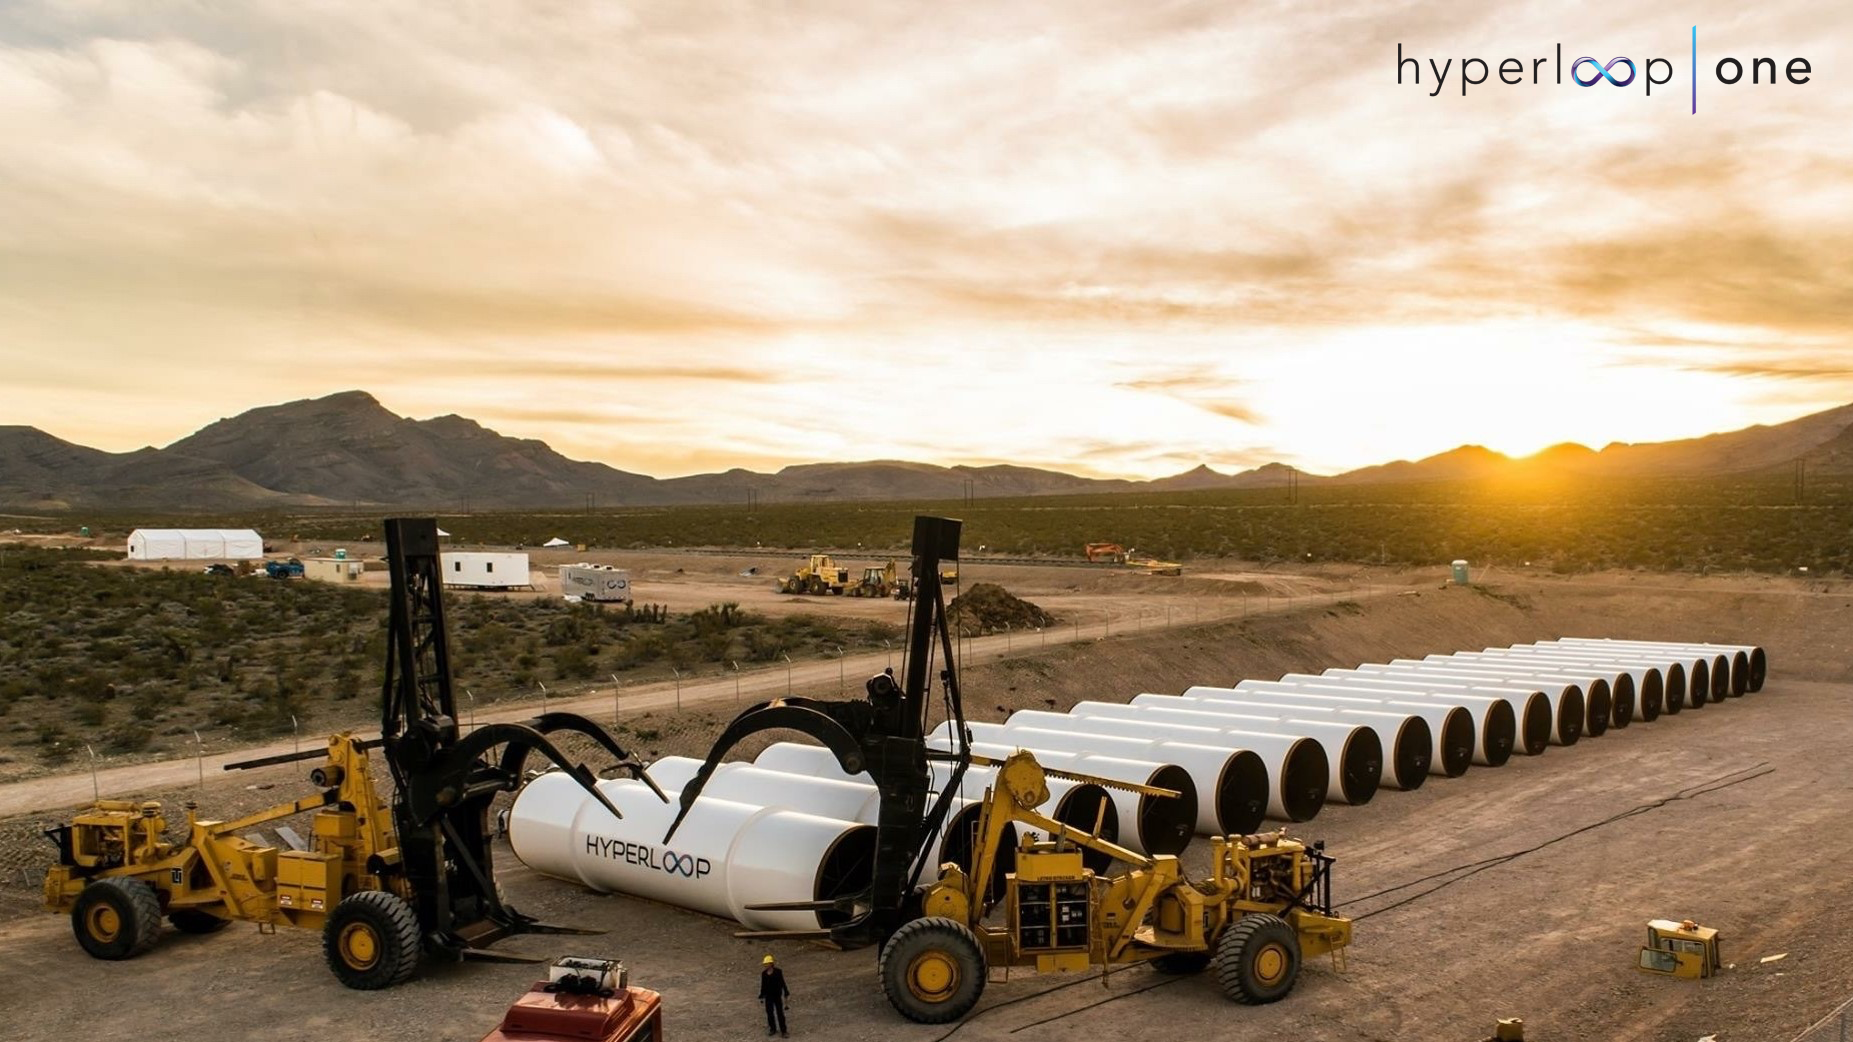 Hyperloop One's desert testing site.